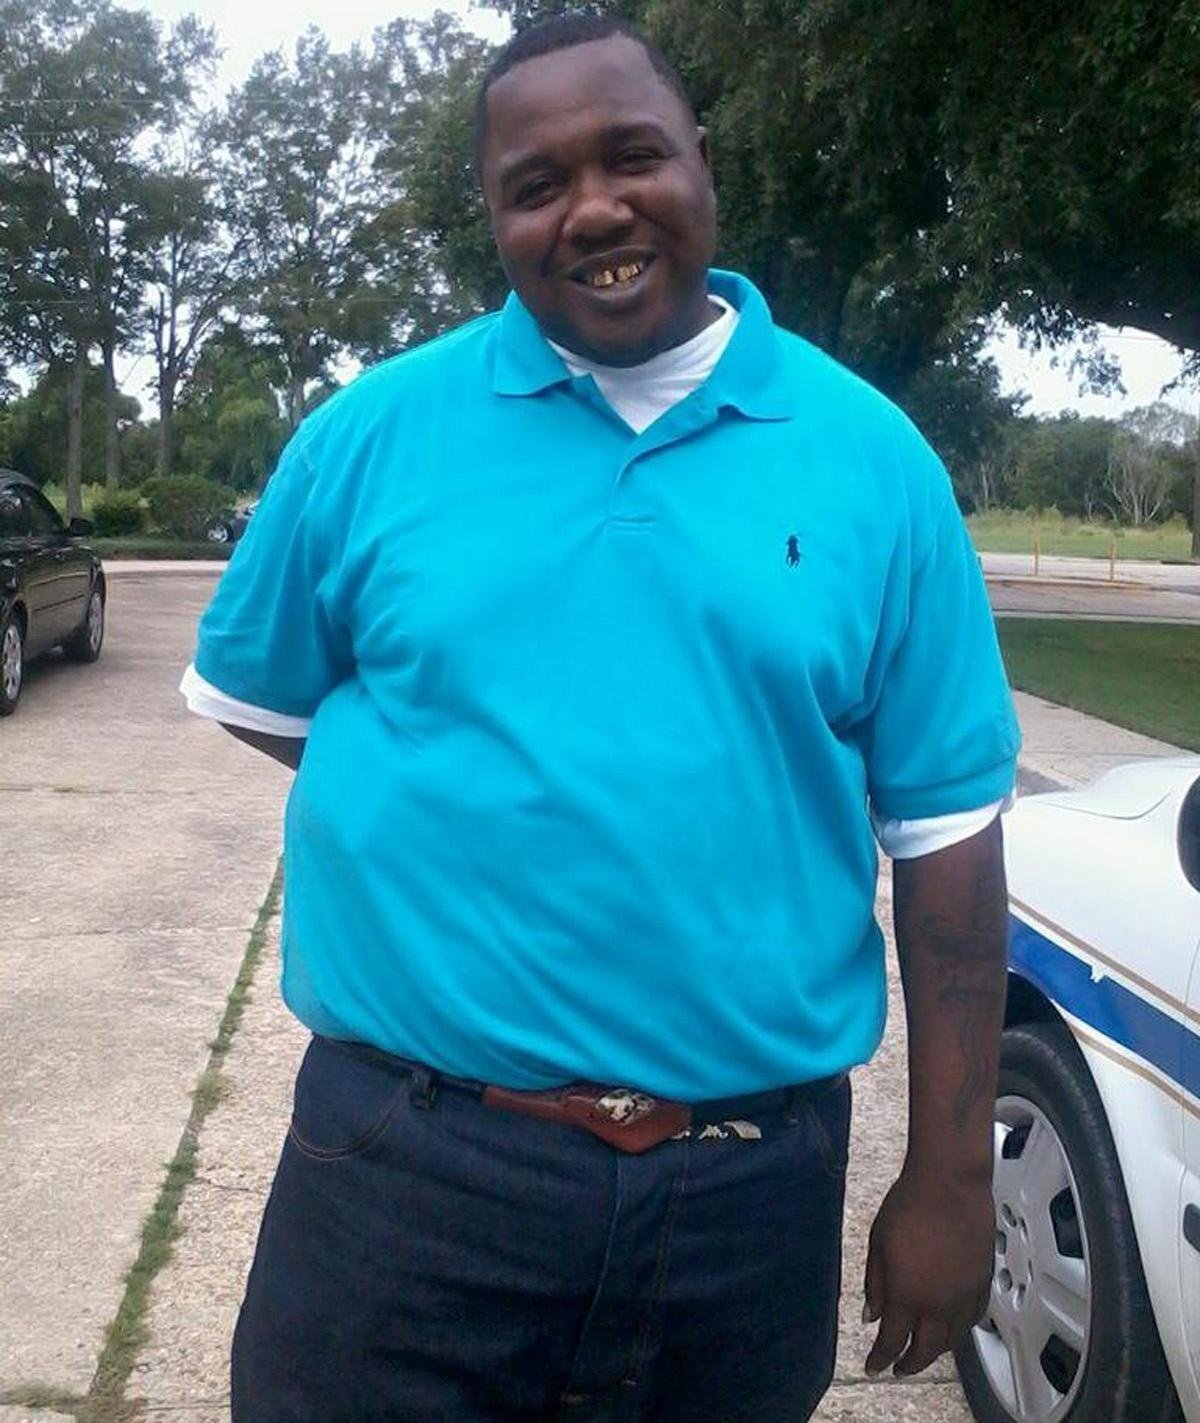 Baton Rouge officer fired, 1 suspended in deadly shooting of Alton Sterling